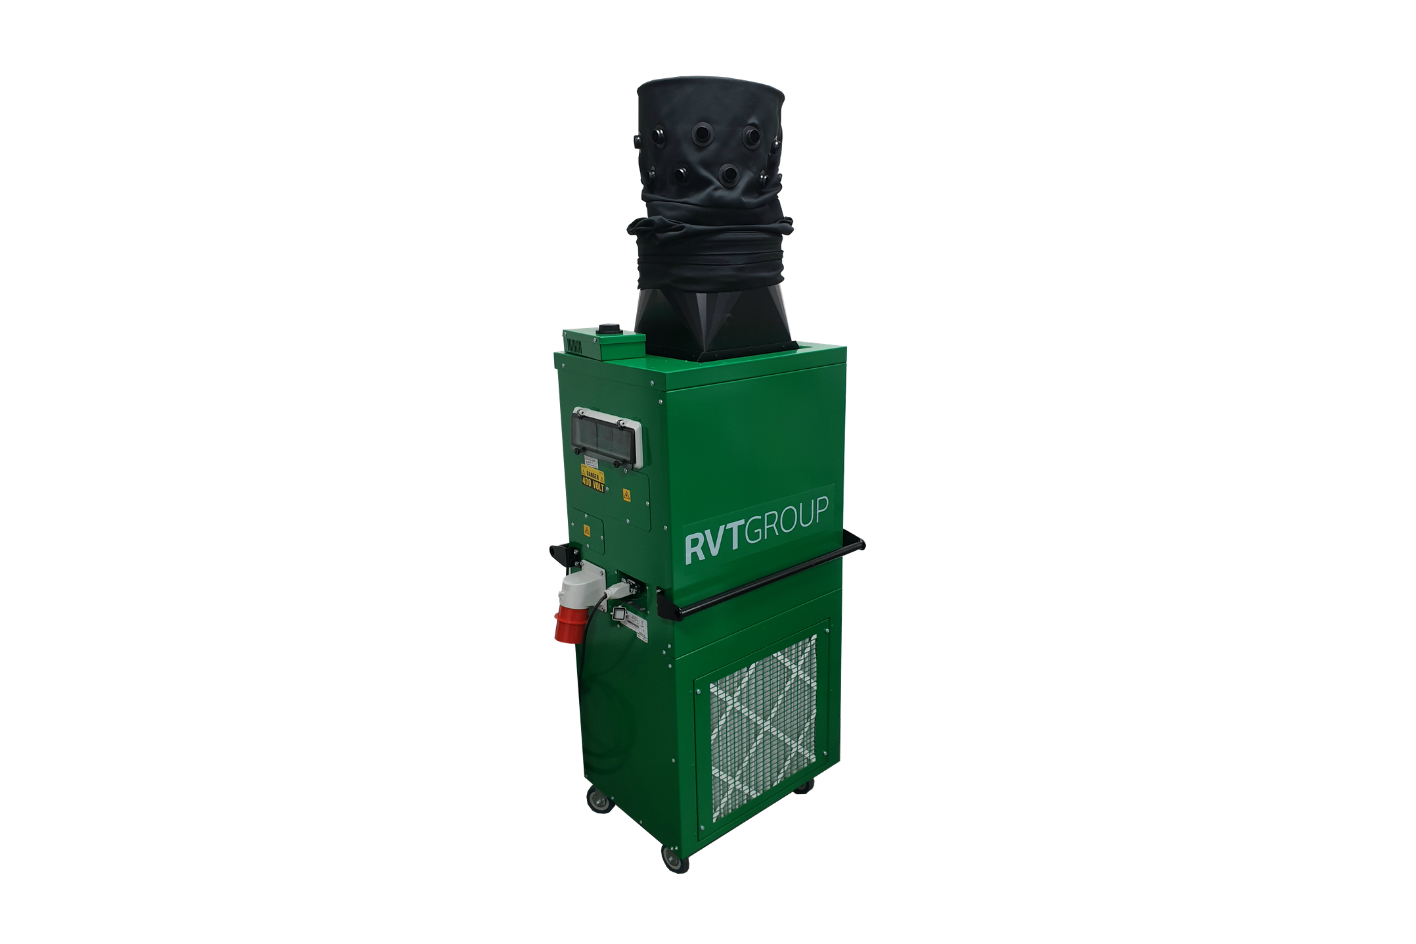 Electric 18kw heater RVT 18 FD web size